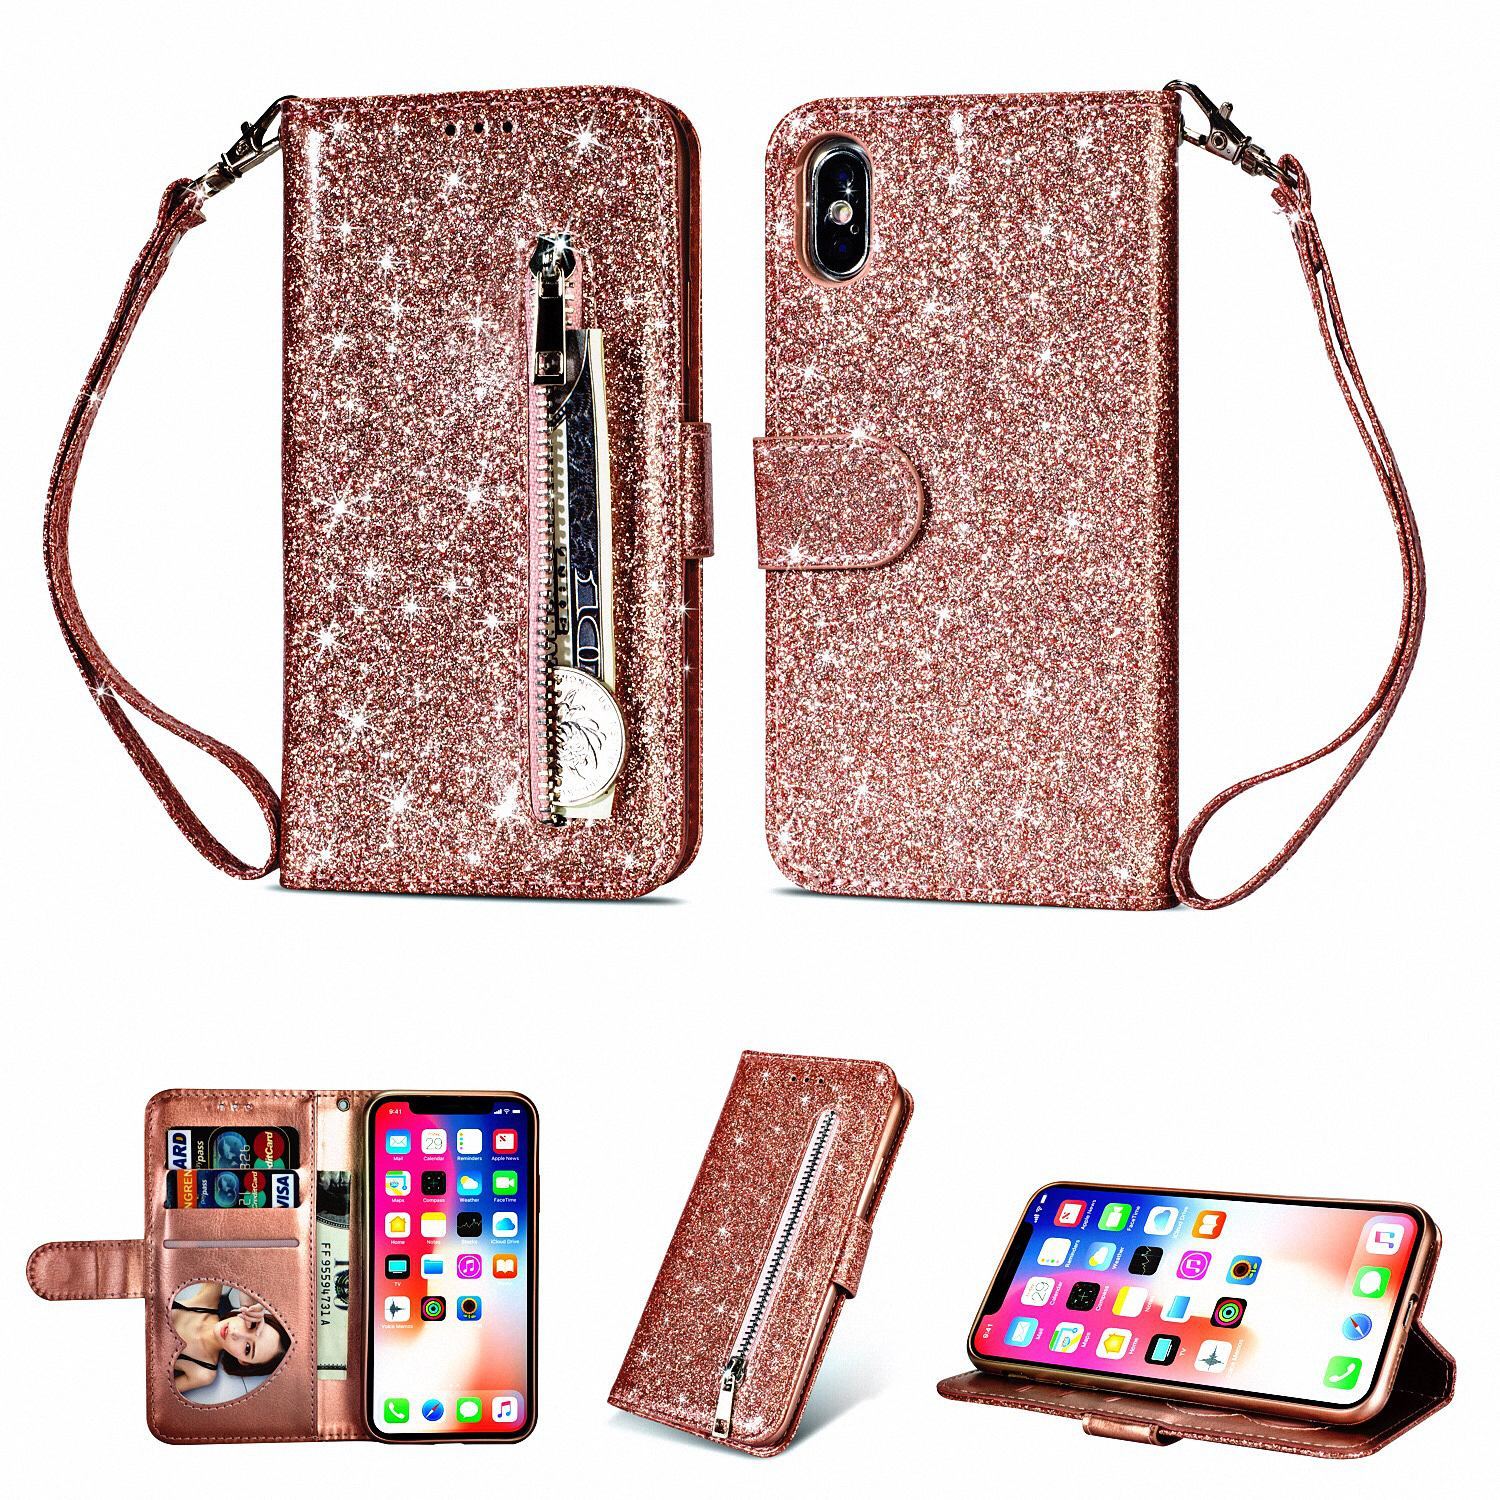 """Allytech iPhone X Case, Premium PU Leather Glitter Protective Zipper Cards Slots Wallet Case Cover with Hand Strap Shockproof Stand Cover for Apple iPhone X 5.8"""" 2017 Released, Rosegold"""